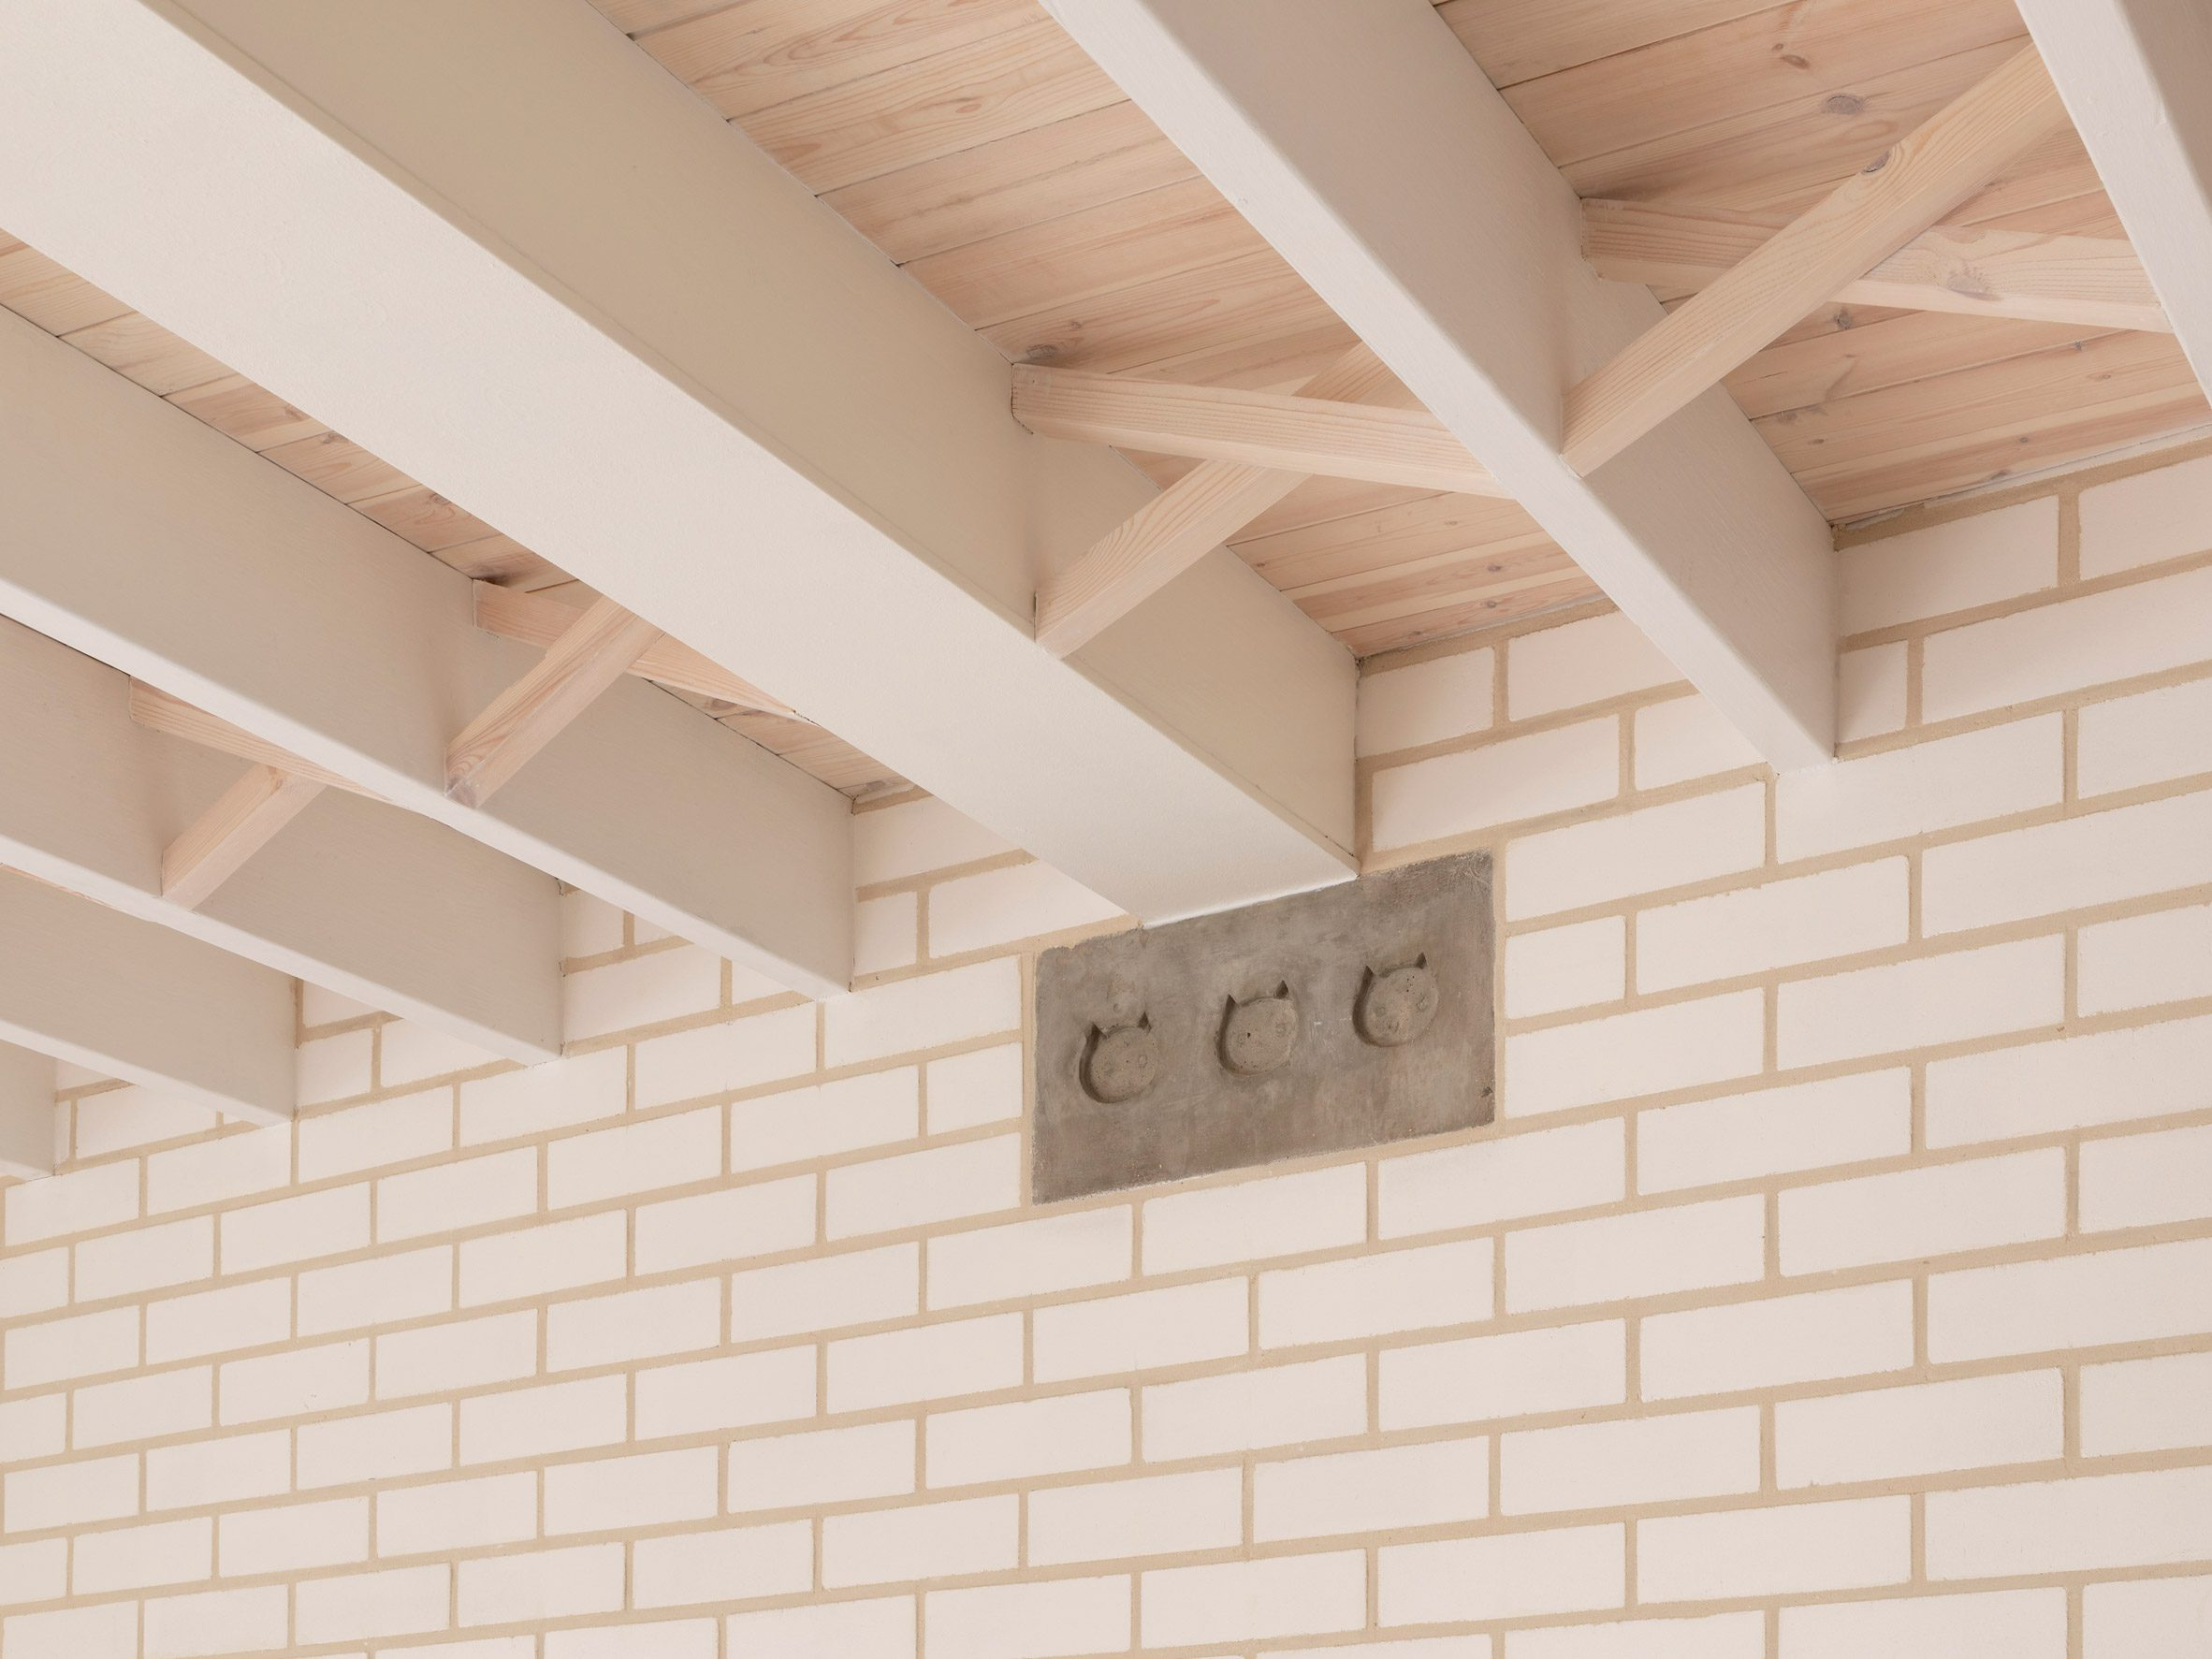 Cat details in The Queen of Catford by Tsuruta Architects